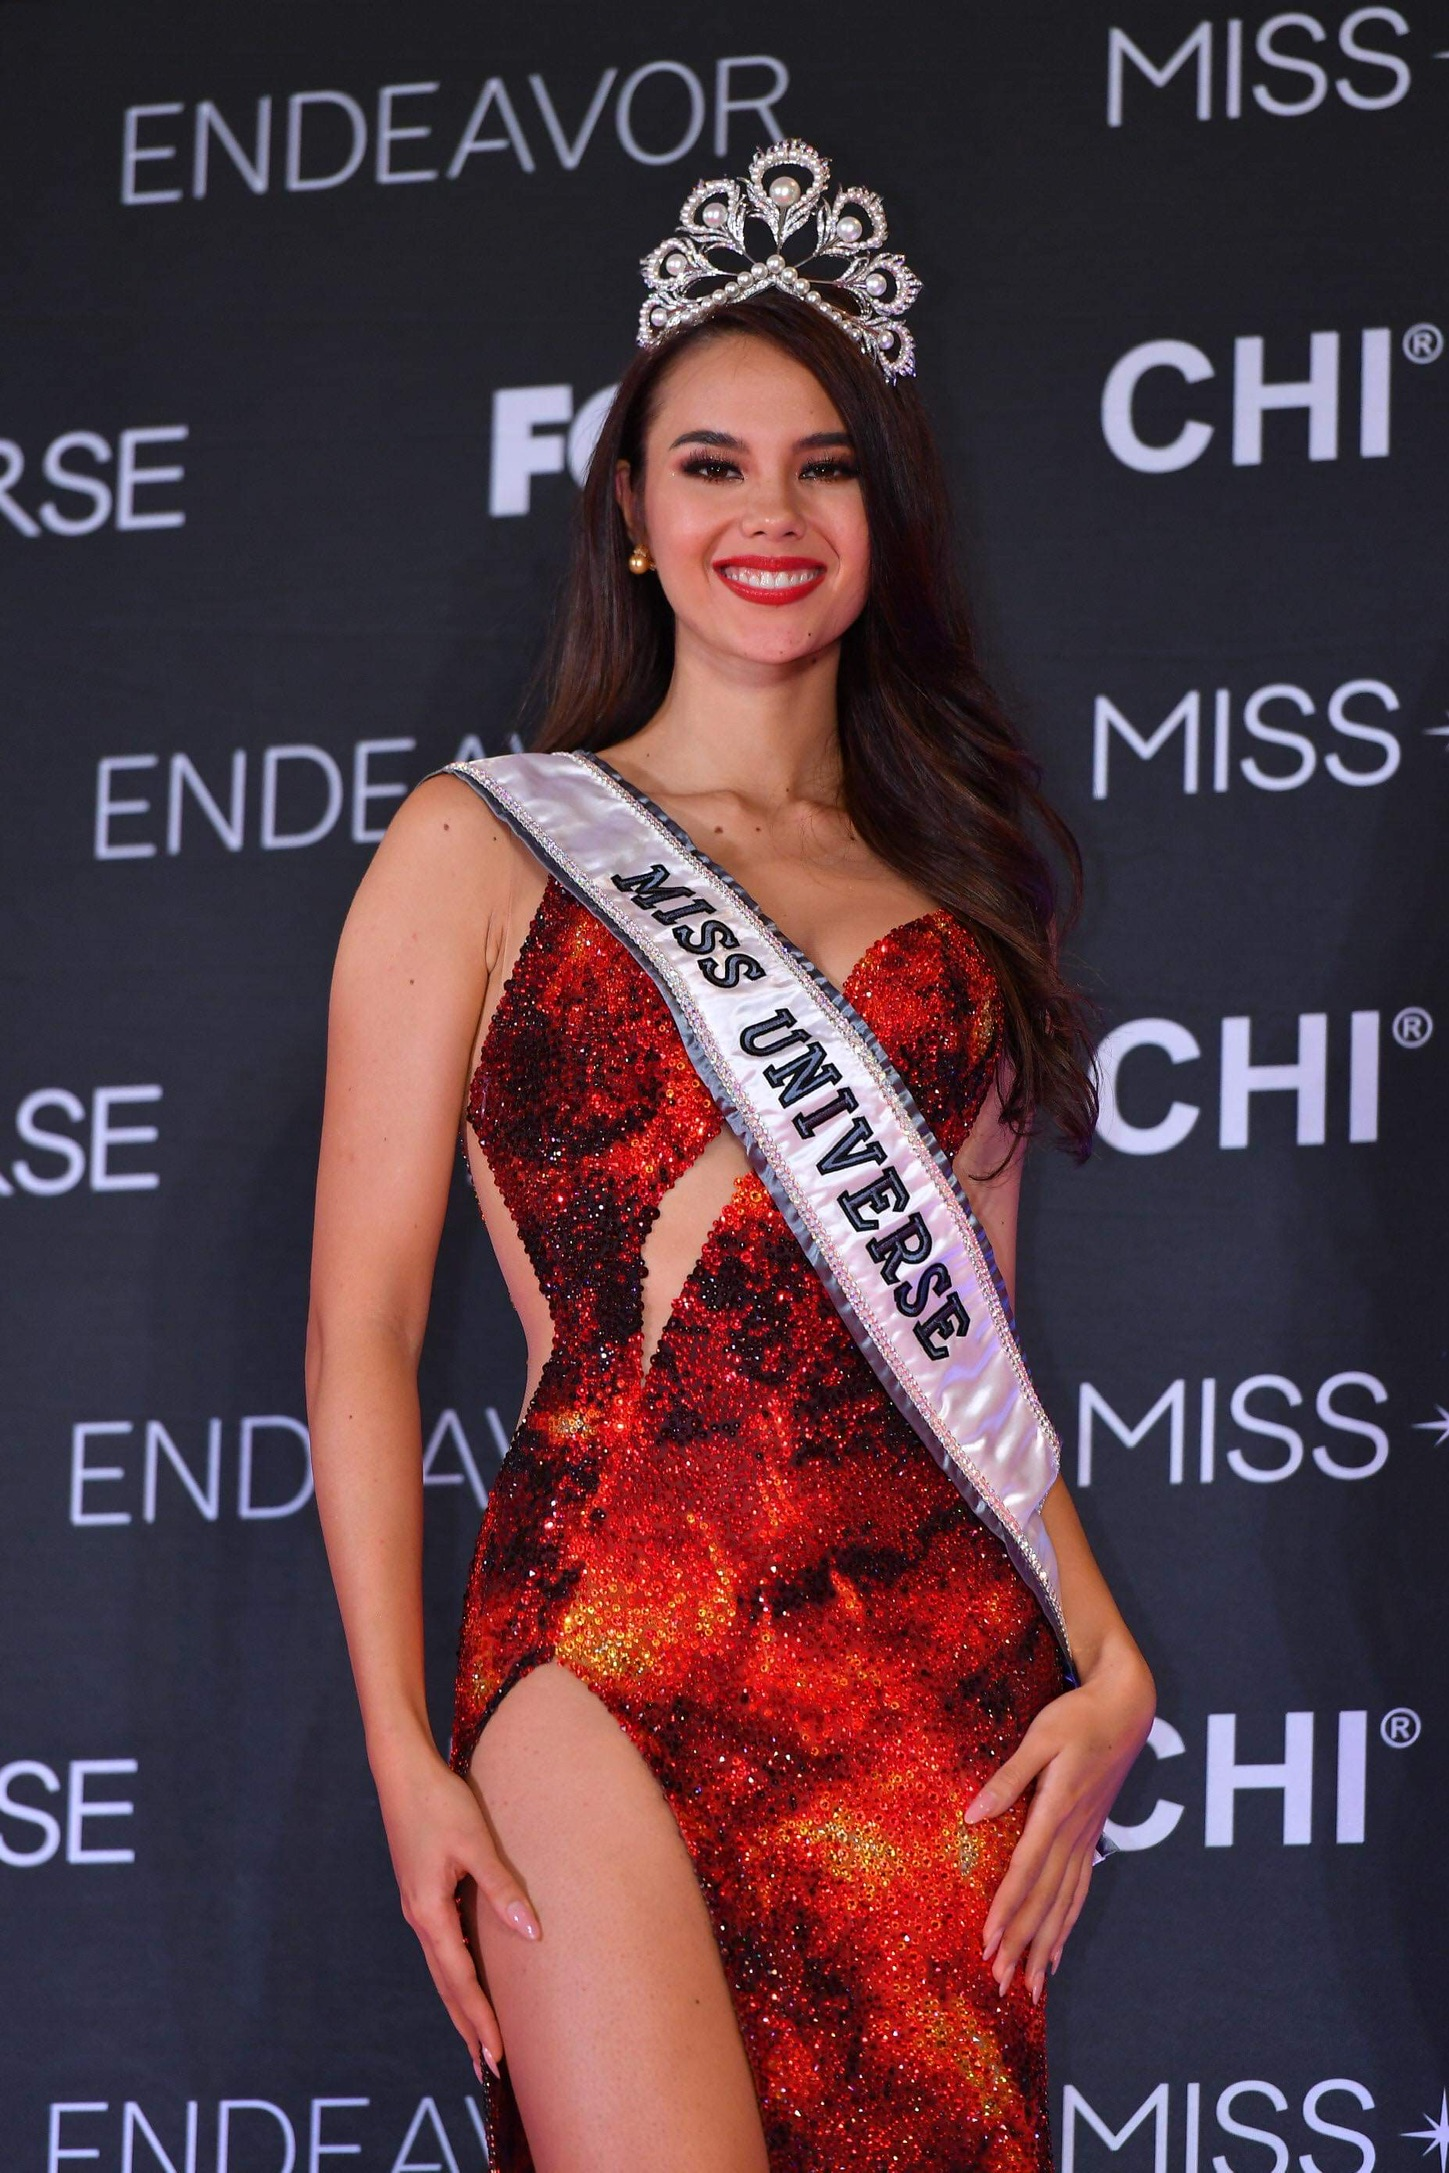 Catriona Gray, Miss Universe 2018